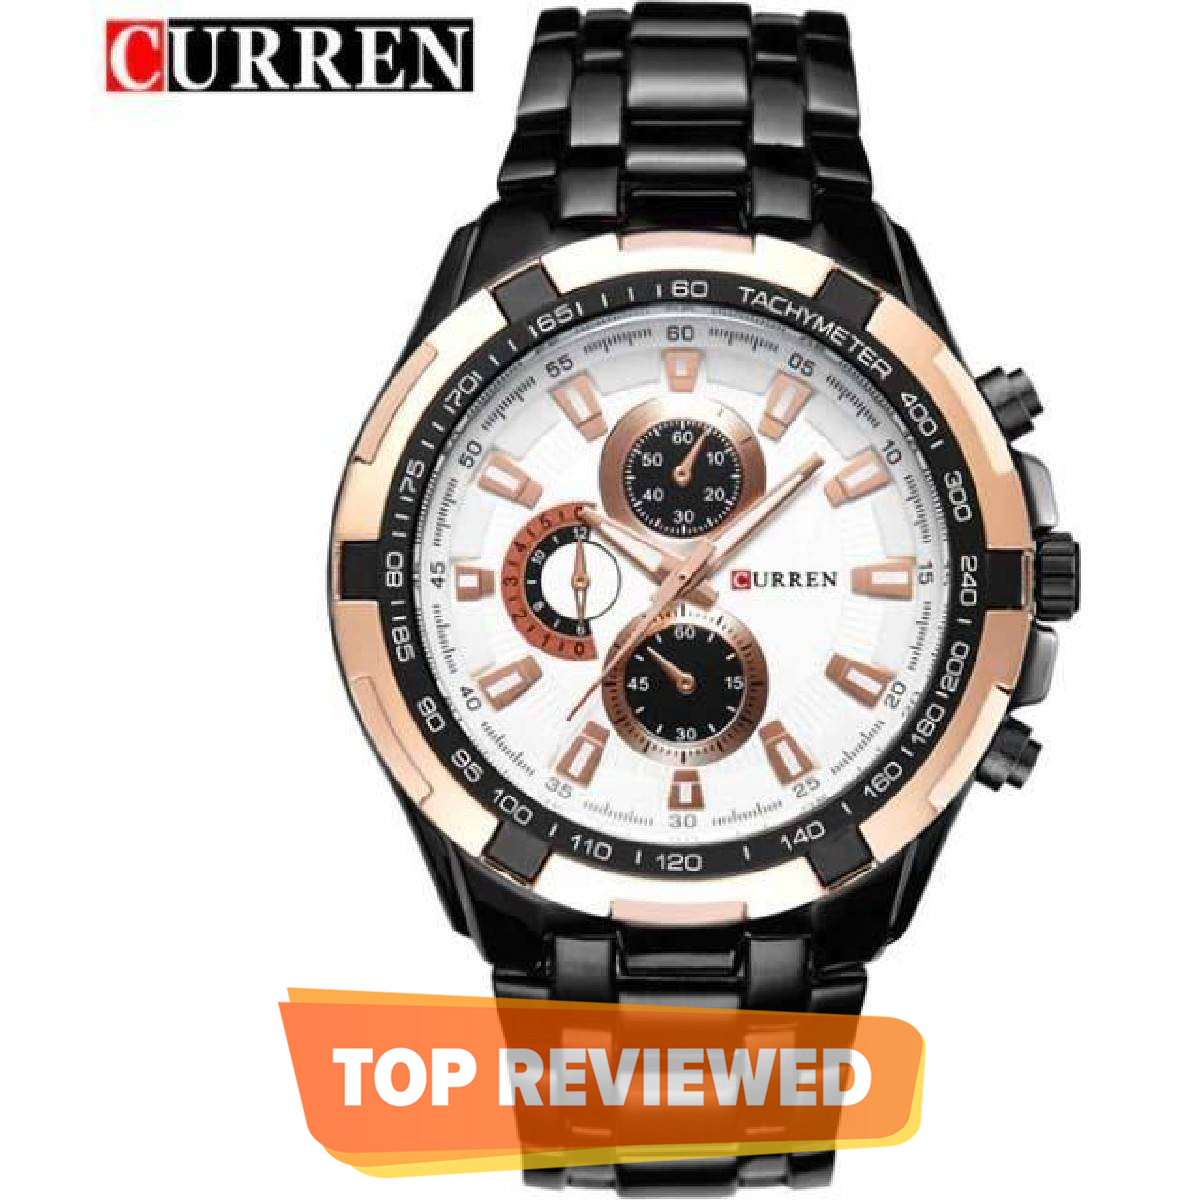 CURREN Stainless Steel Waterproof Quartz Military Sports Watch With Brand Box - 8023